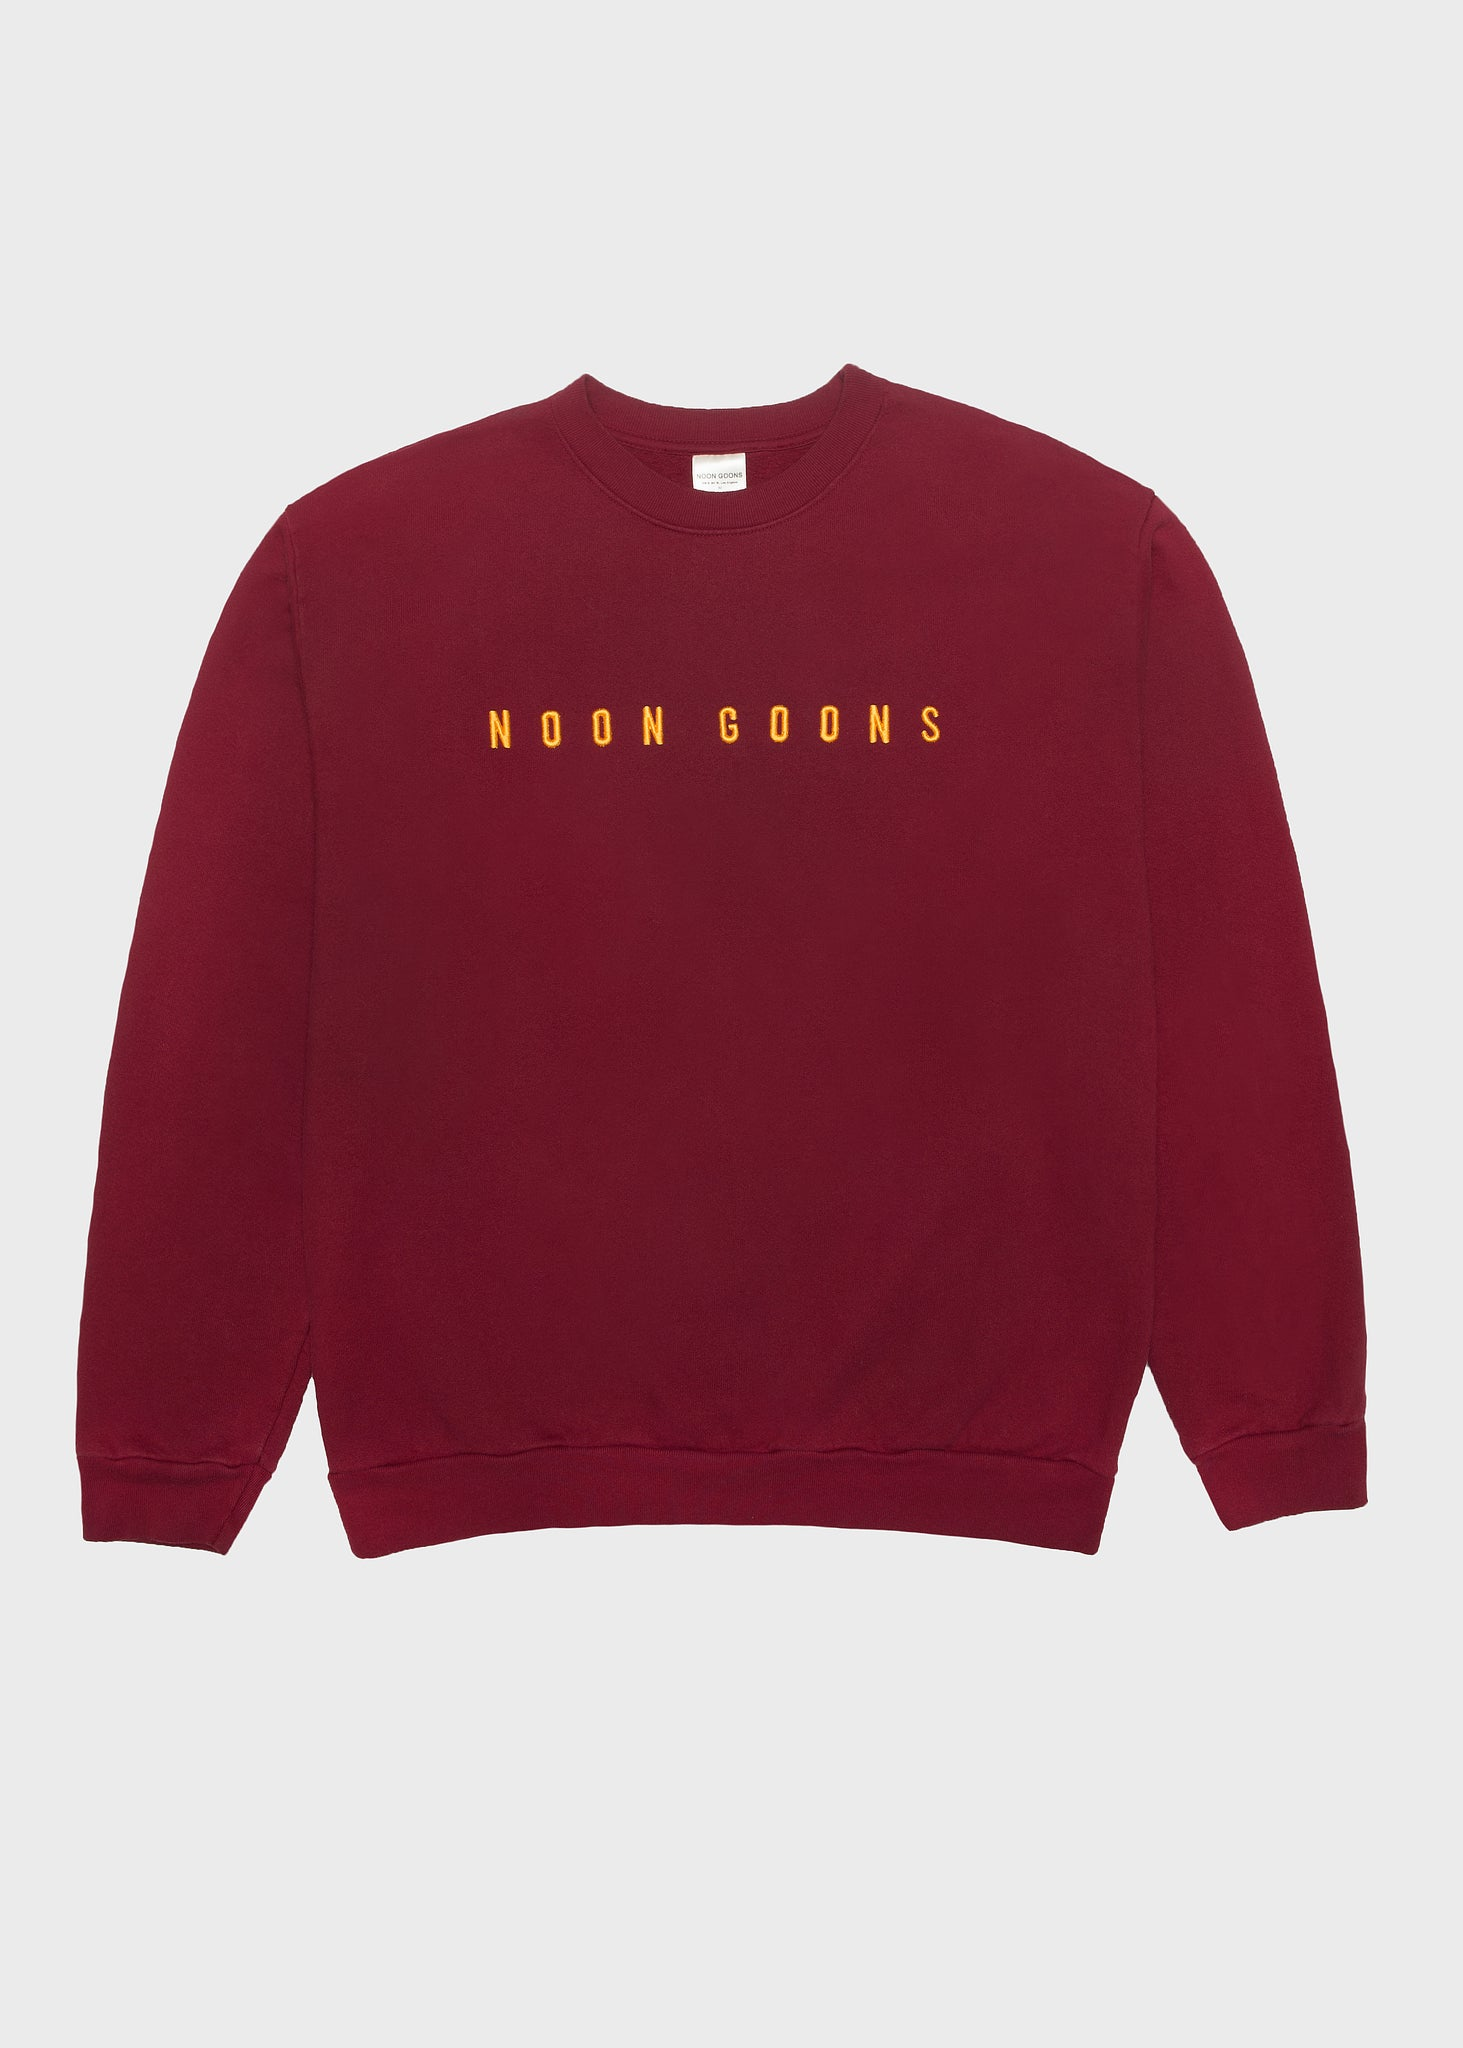 Noon Goons Is Gold - Burgandy